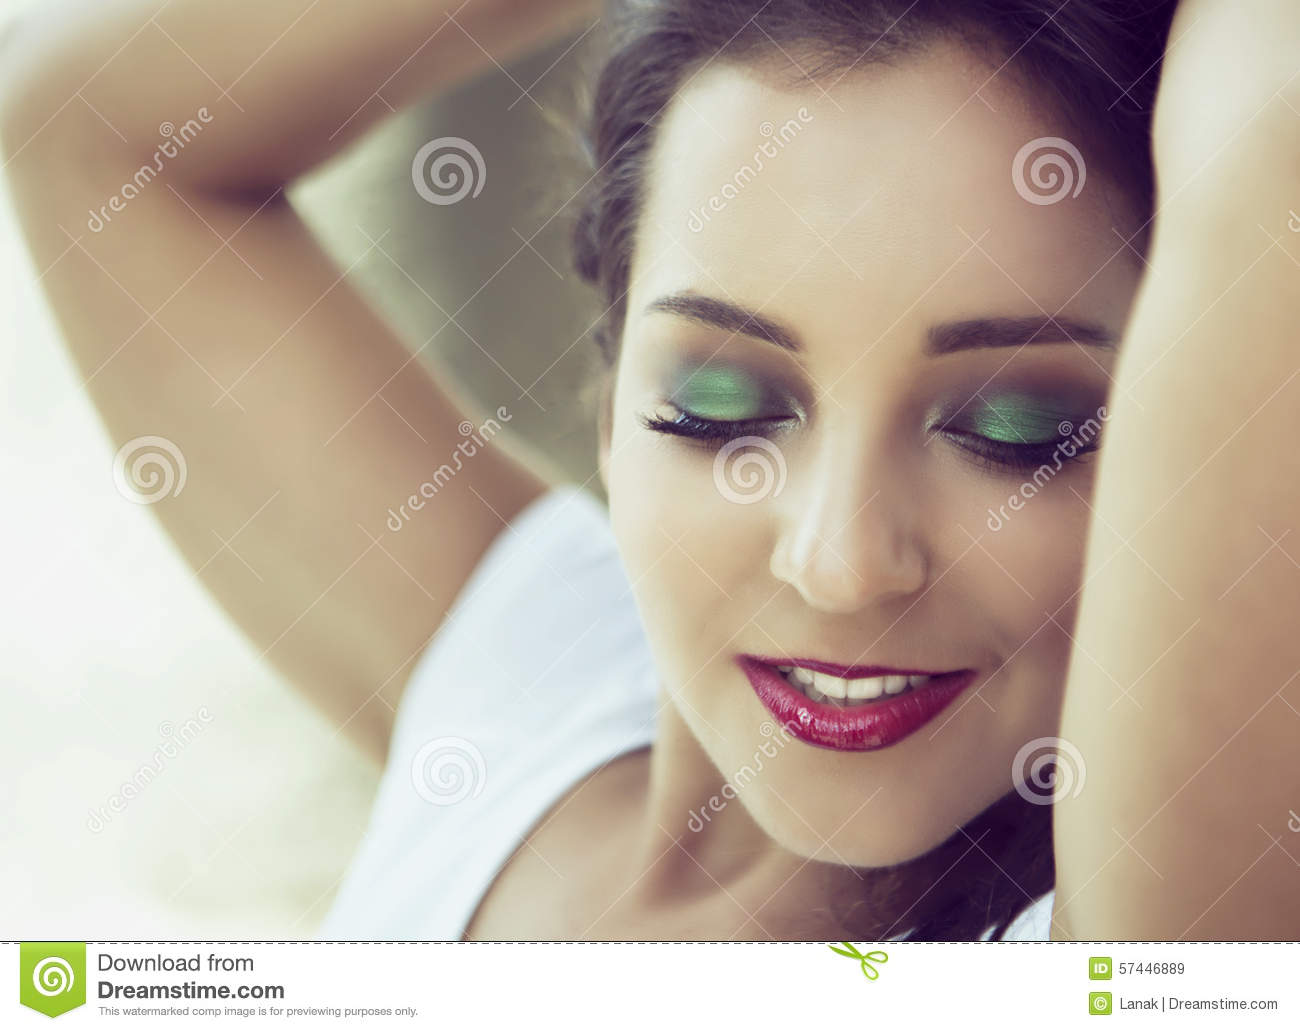 Woman eyes painted in green Photo | Free Download